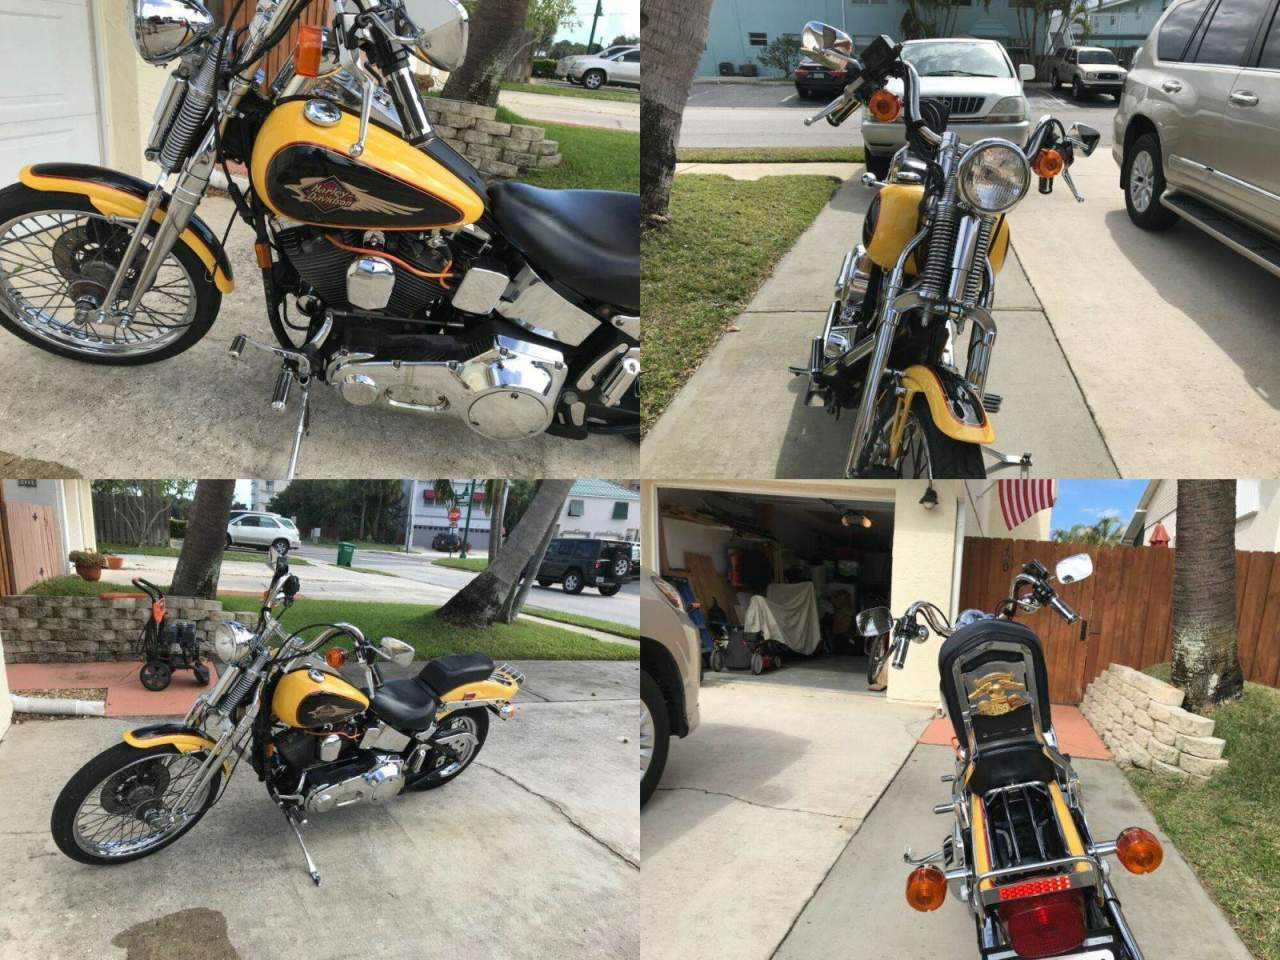 1995 Harley-Davidson Softail Yellow used for sale